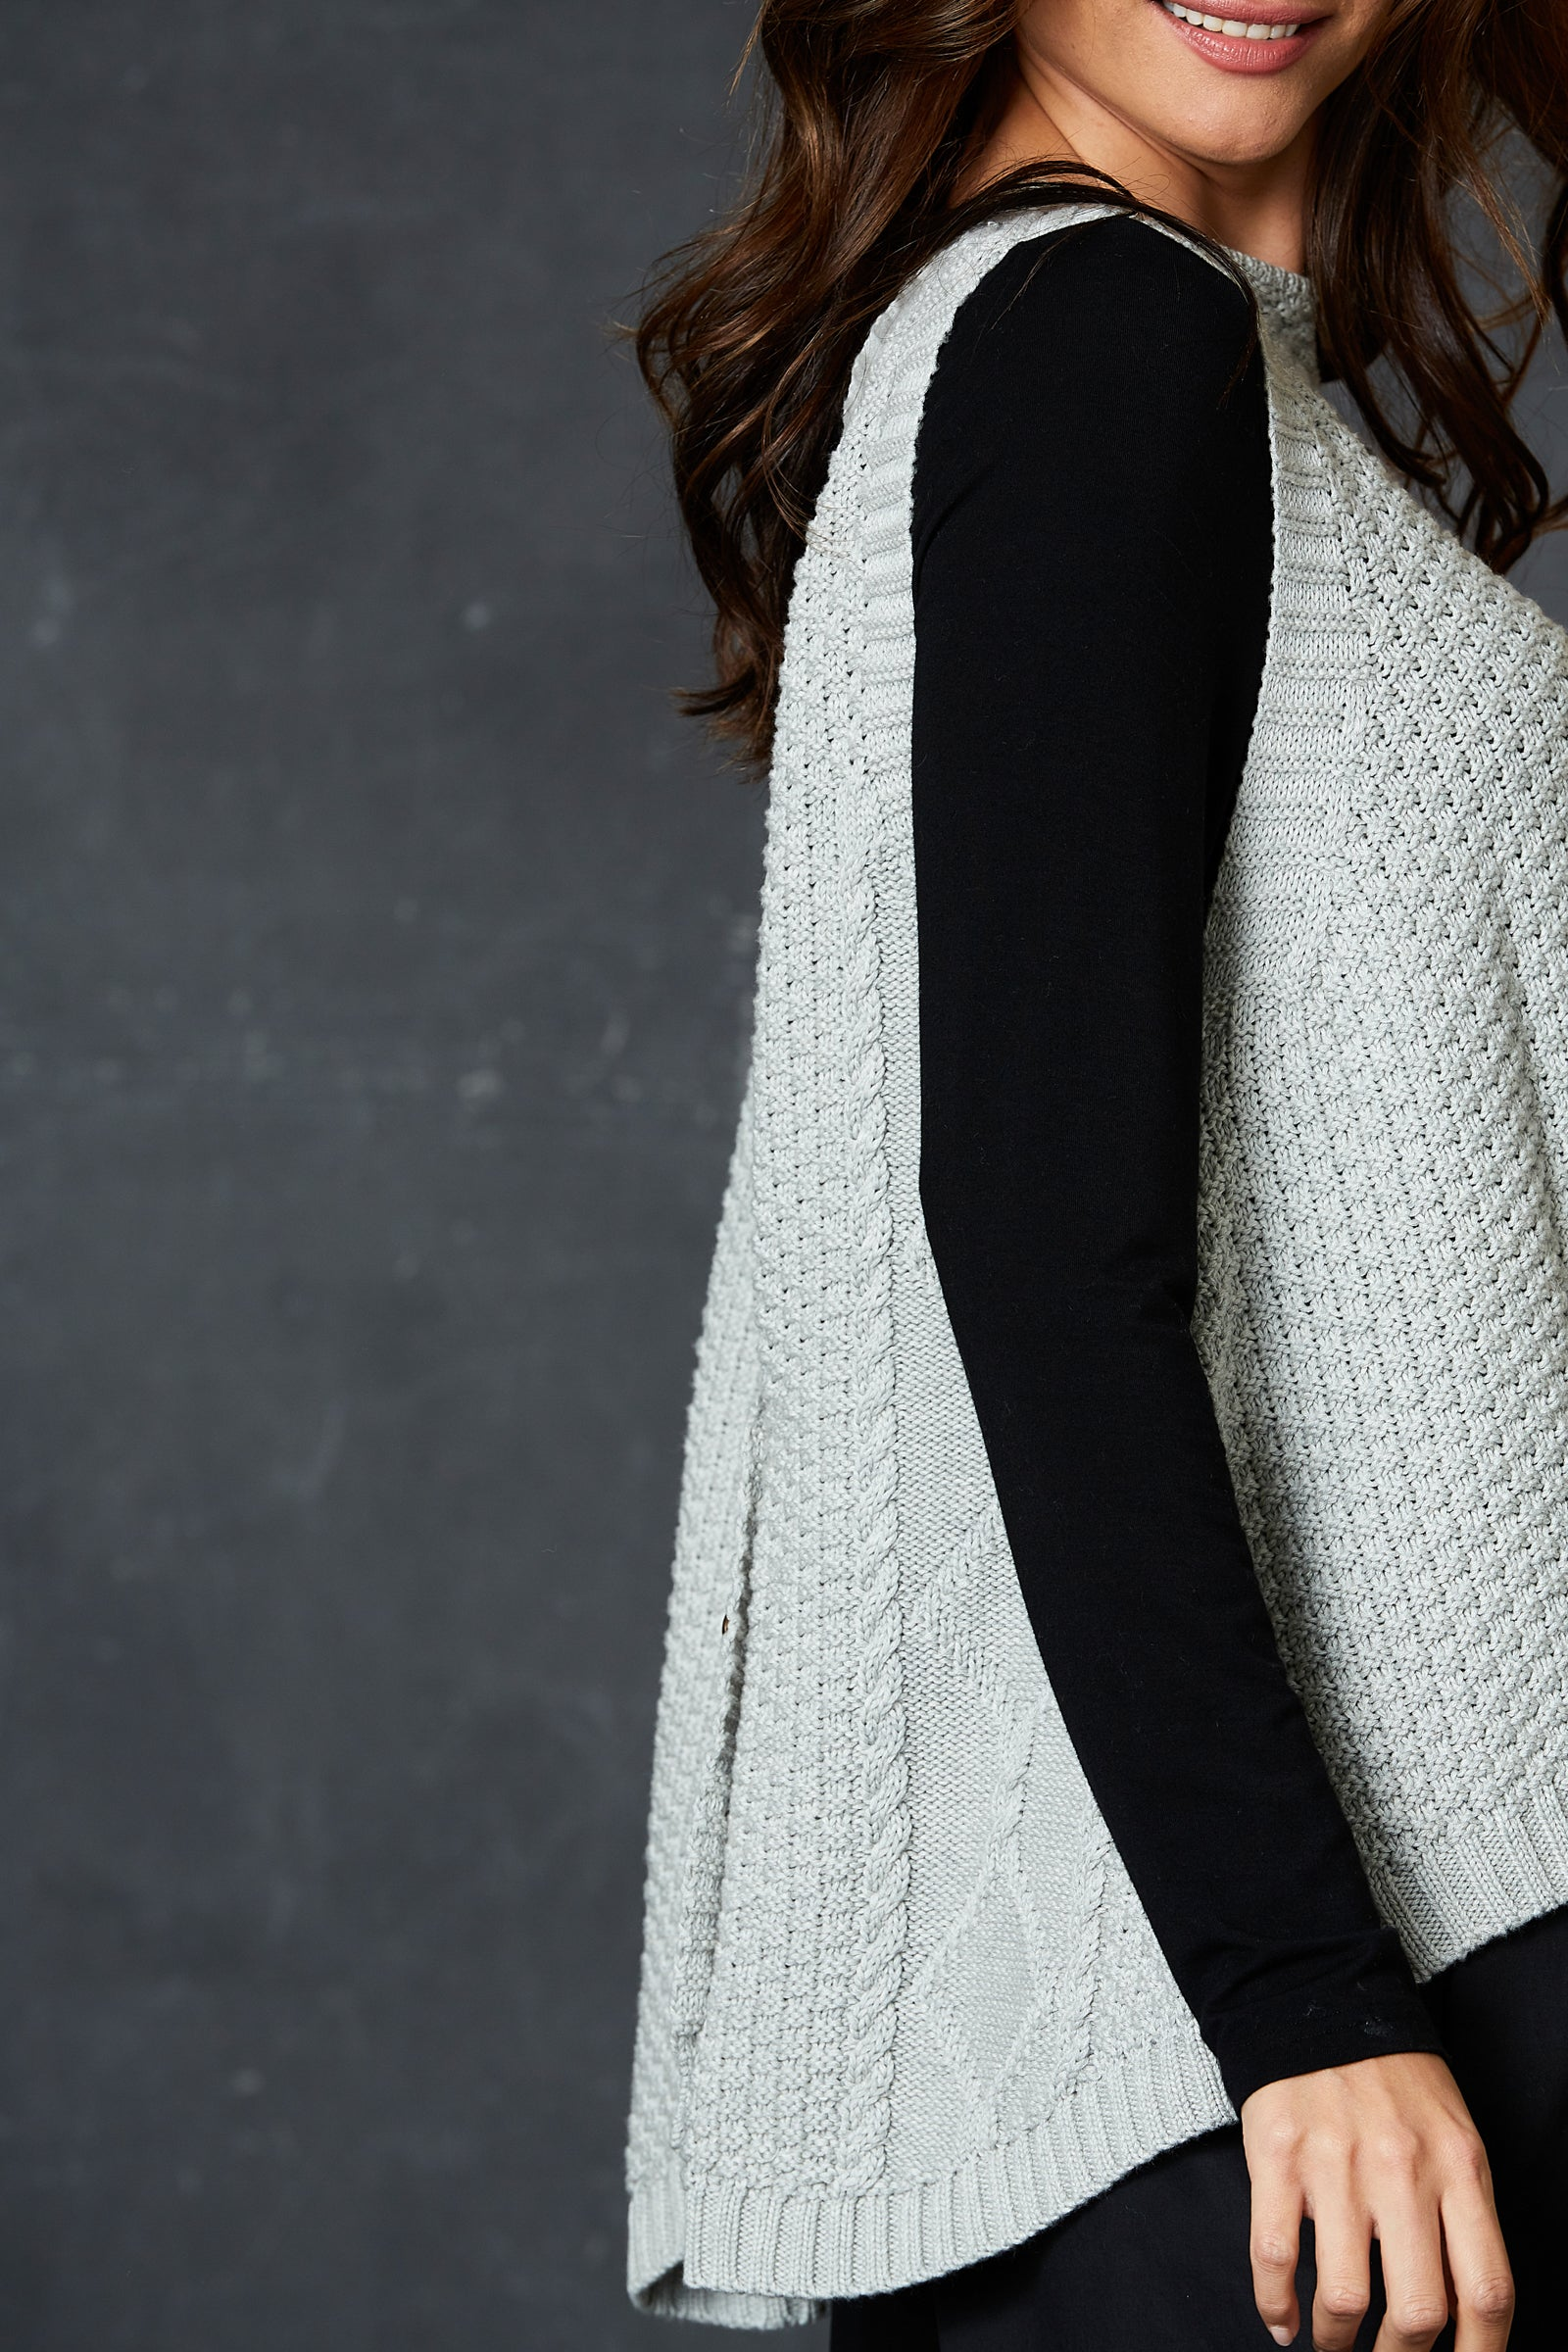 Unwind Cable Vest - Marle - eb&ive Clothing - Knit Vest One Size